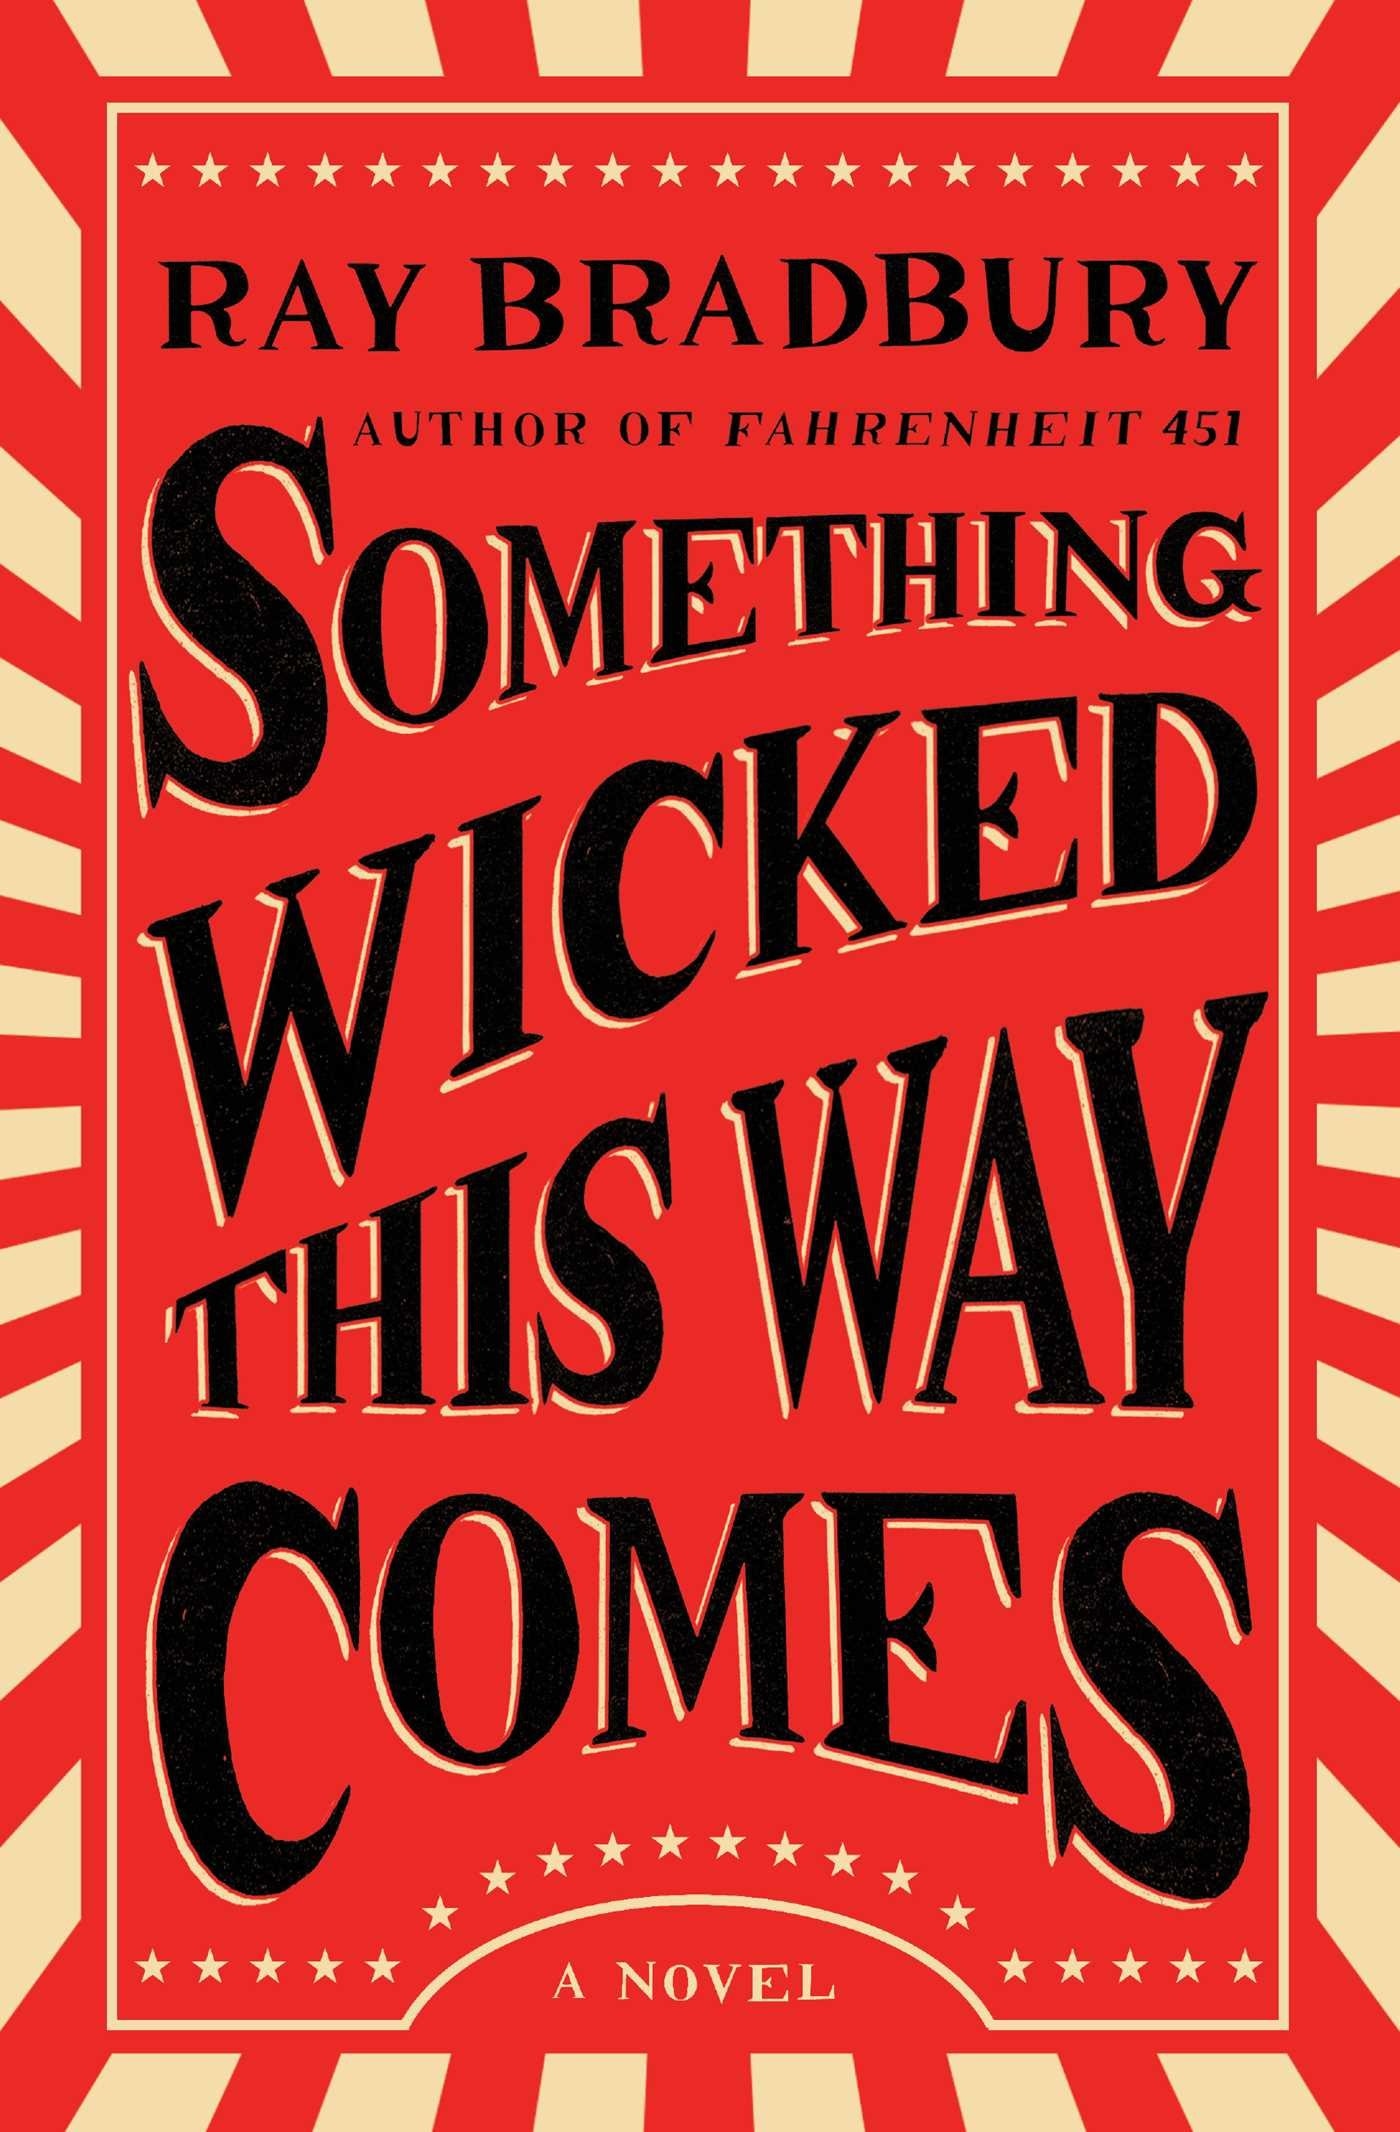 Something Wicked This Way Comes: A Novel by Simon & Schuster